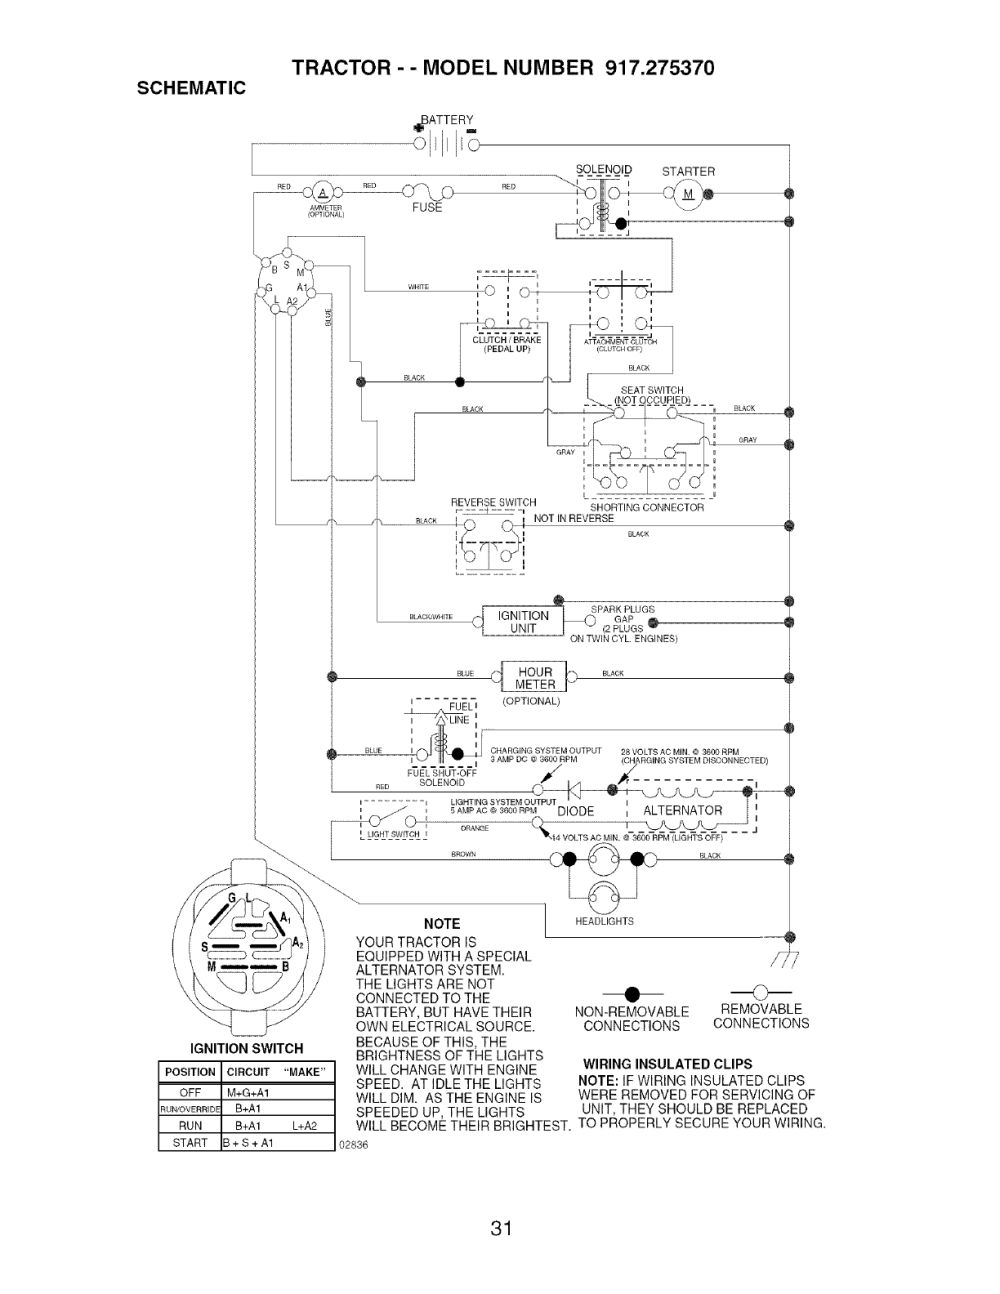 medium resolution of page 31 of craftsman lawn mower 917 27537 user guide manualsonline